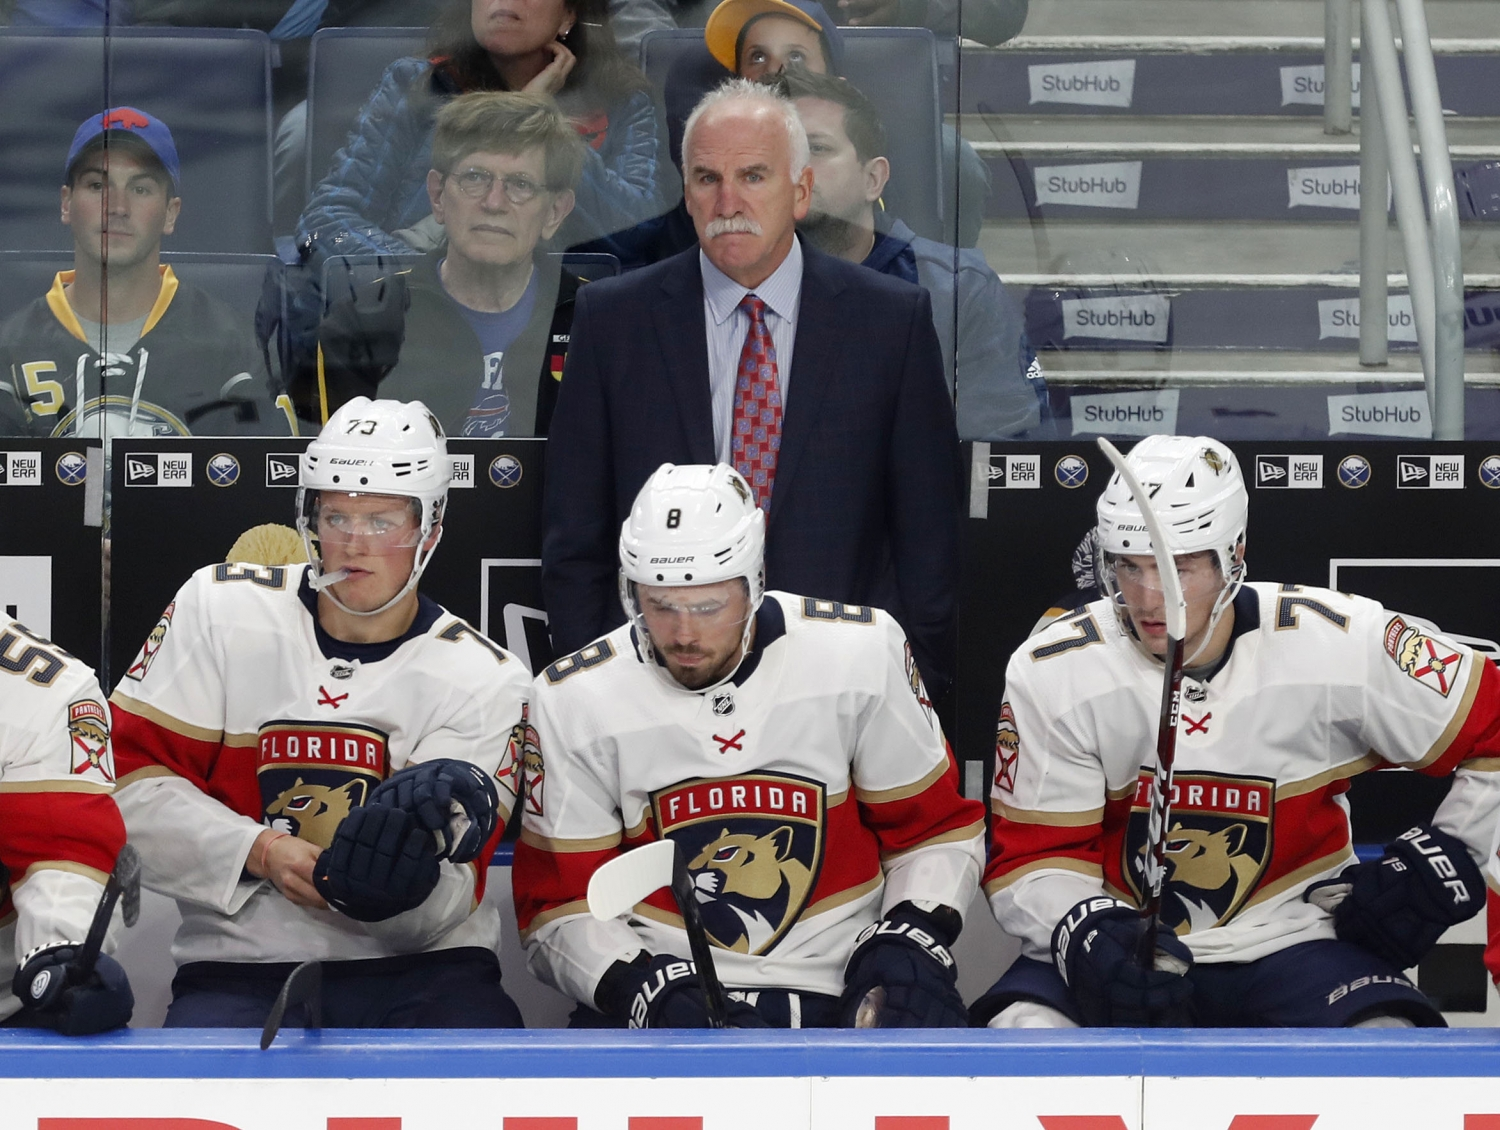 Joel Quenneville 'means business' and it's a new approach for the Florida Panthers